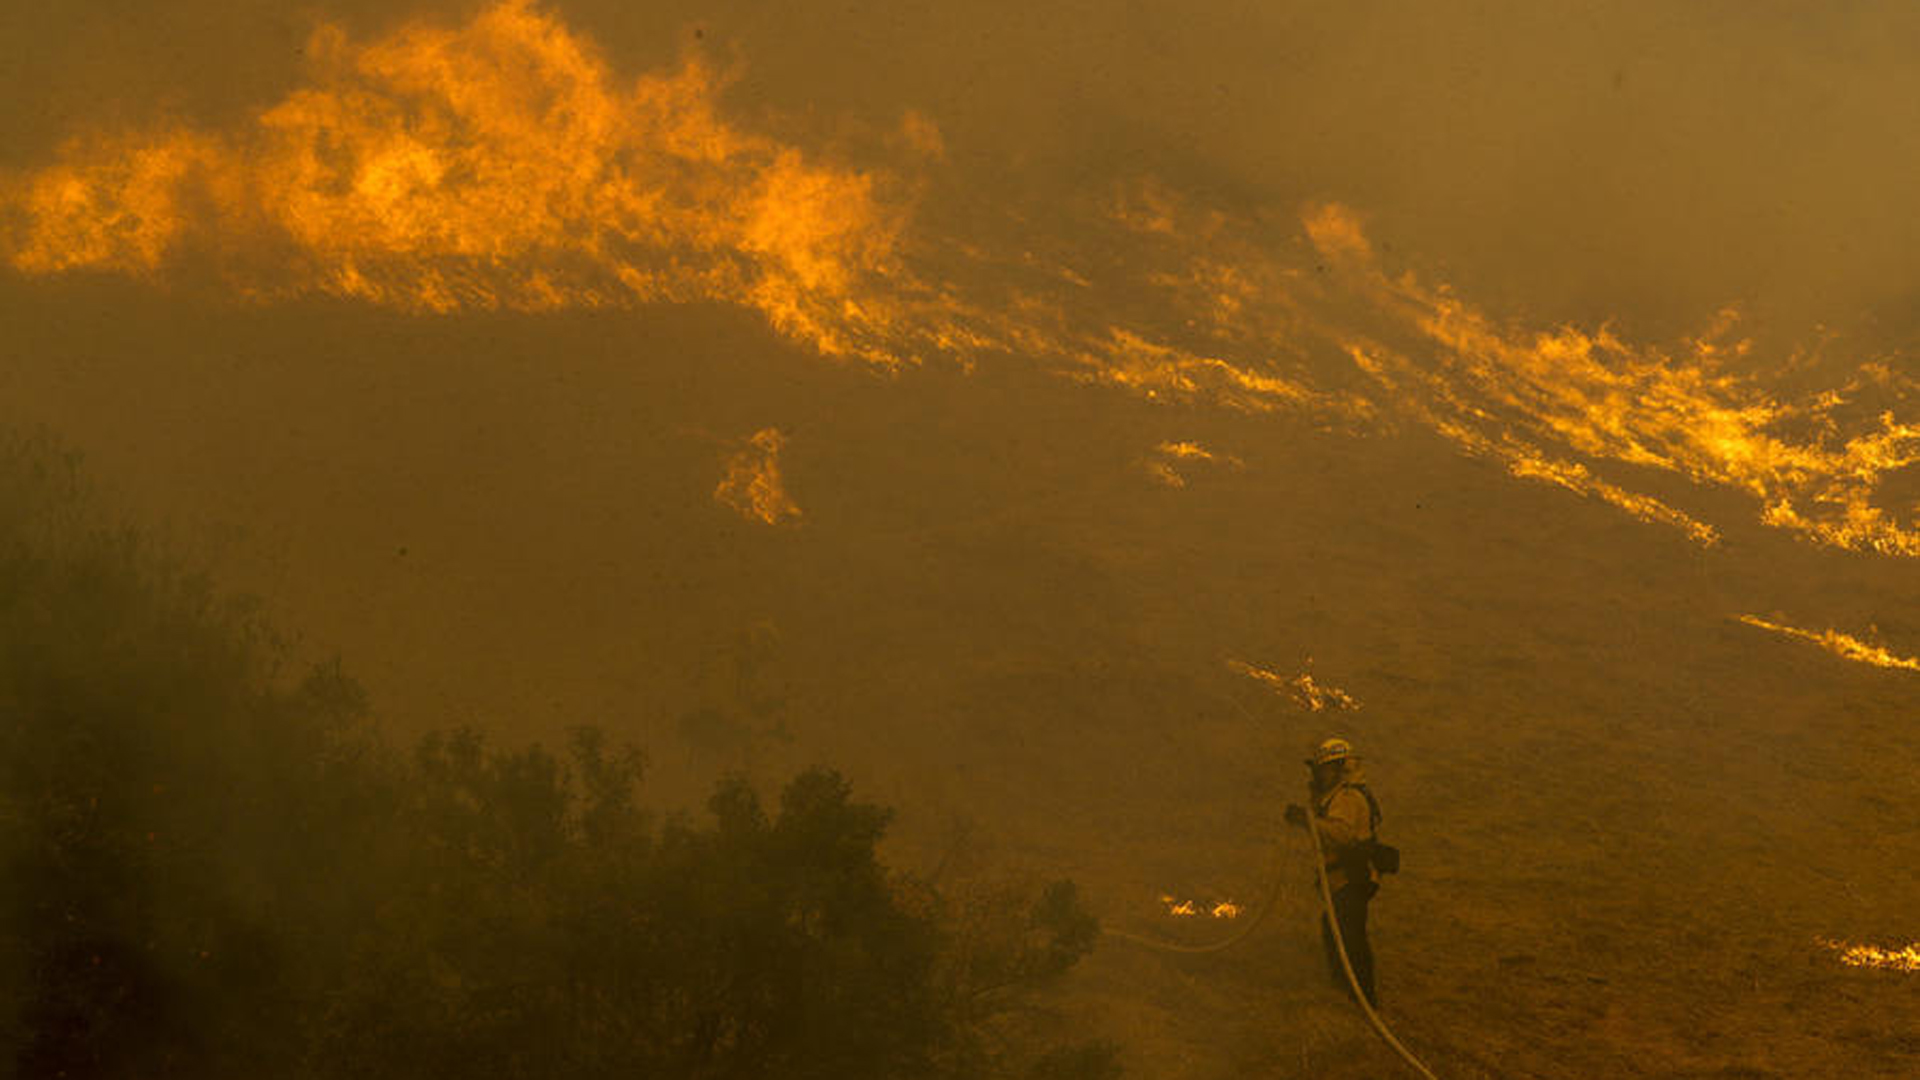 A firefighter battles flames in poor visibility in Lake View Terrace on Dec. 5, 2017. (Credit: Irfan Khan / Los Angeles Times)